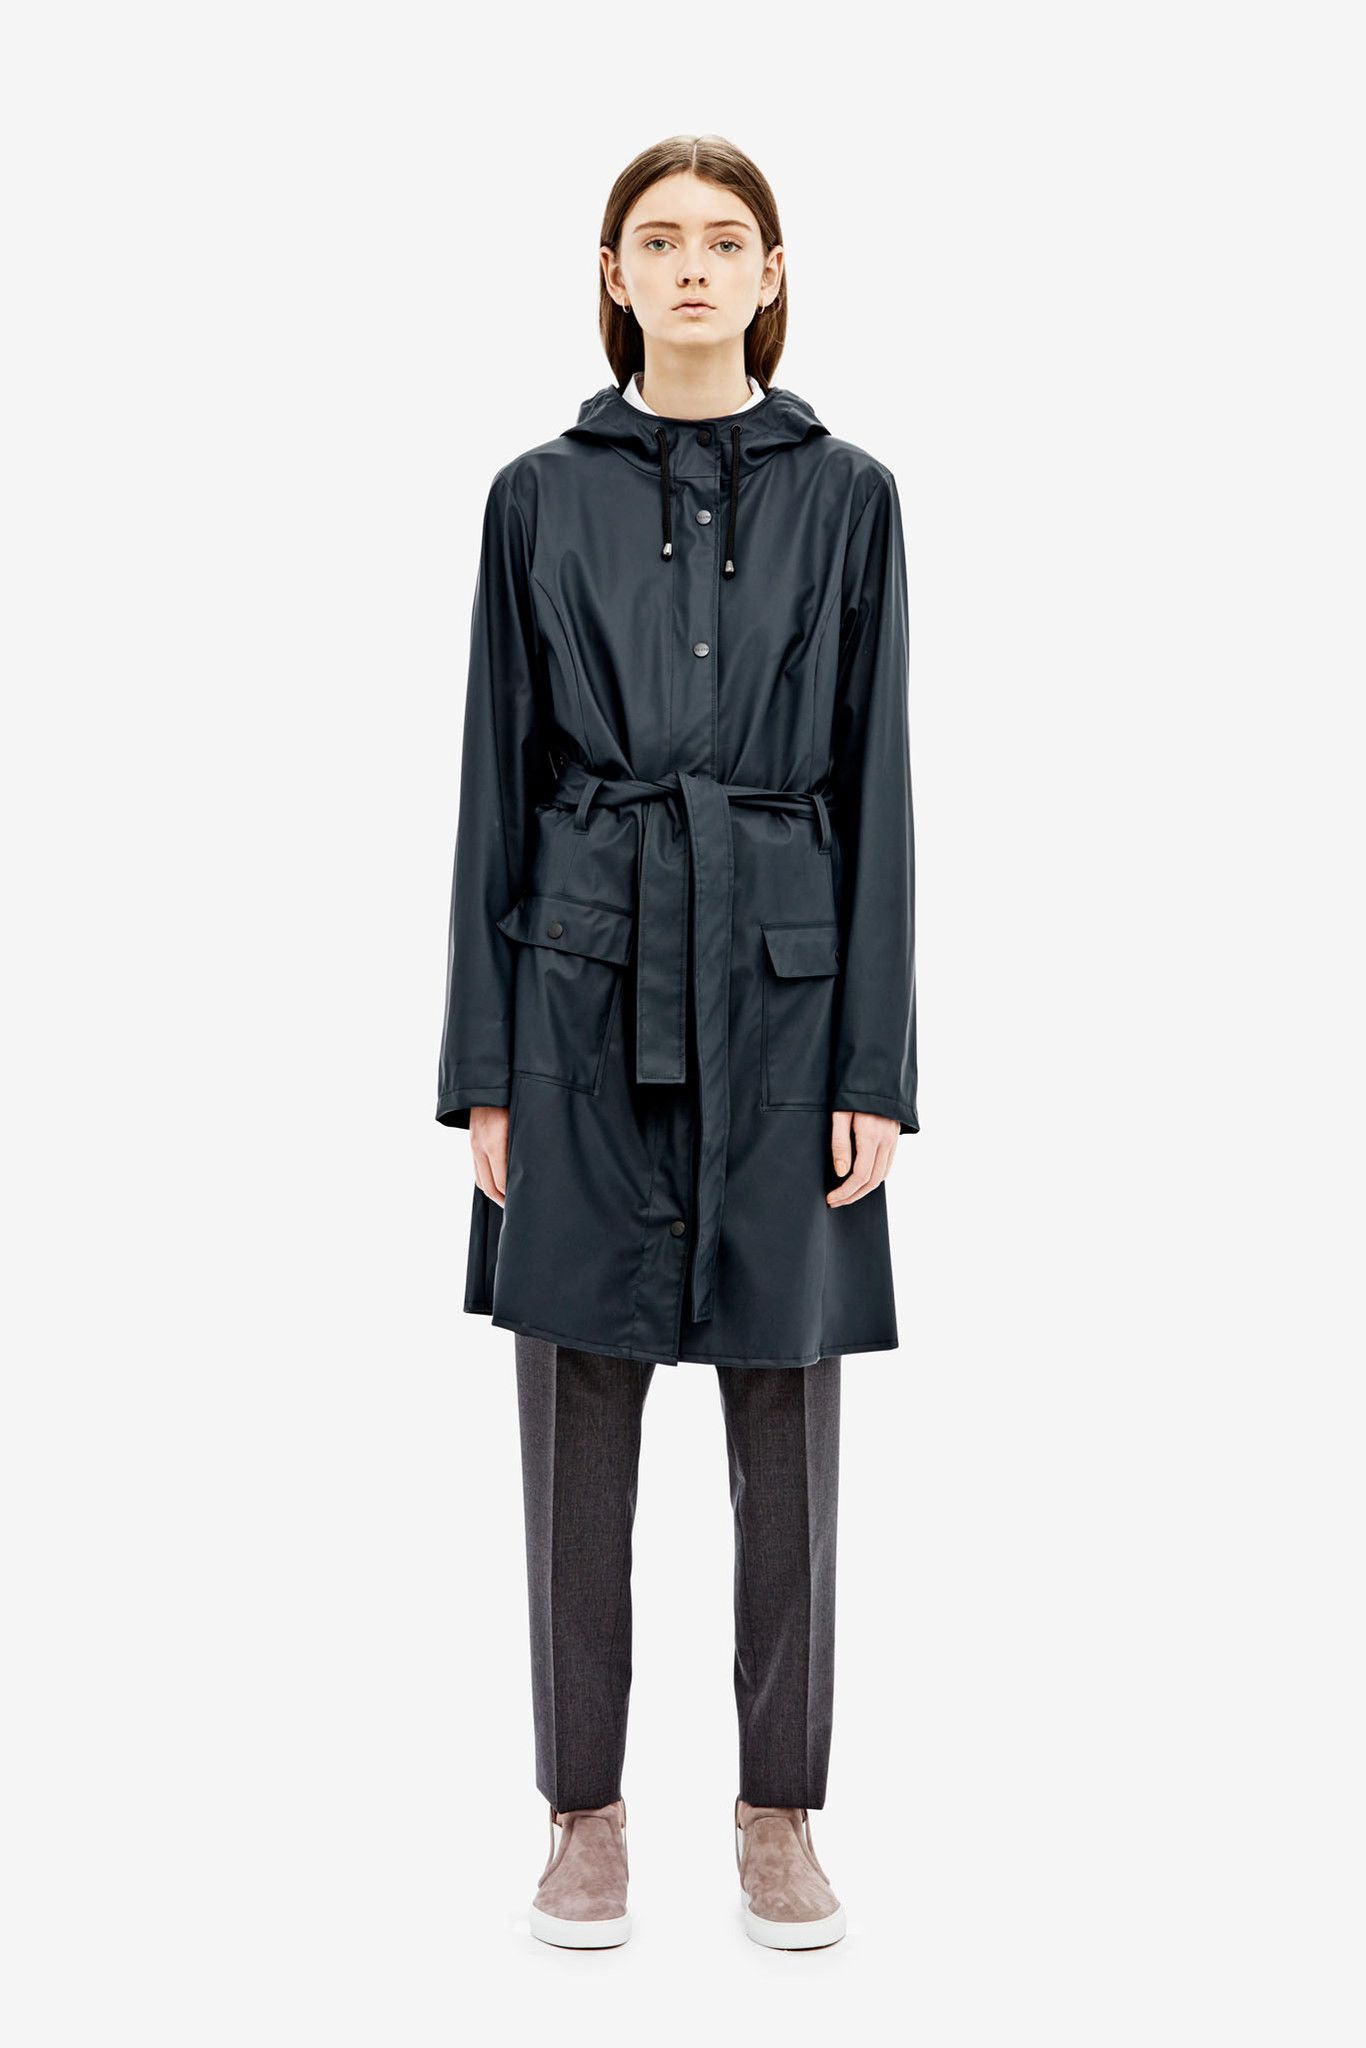 The Curve Jacket is a modern interpretation of a classic trench coat. The CURVE JACKET is made from our signature, light-weighted fabric and combines bo...